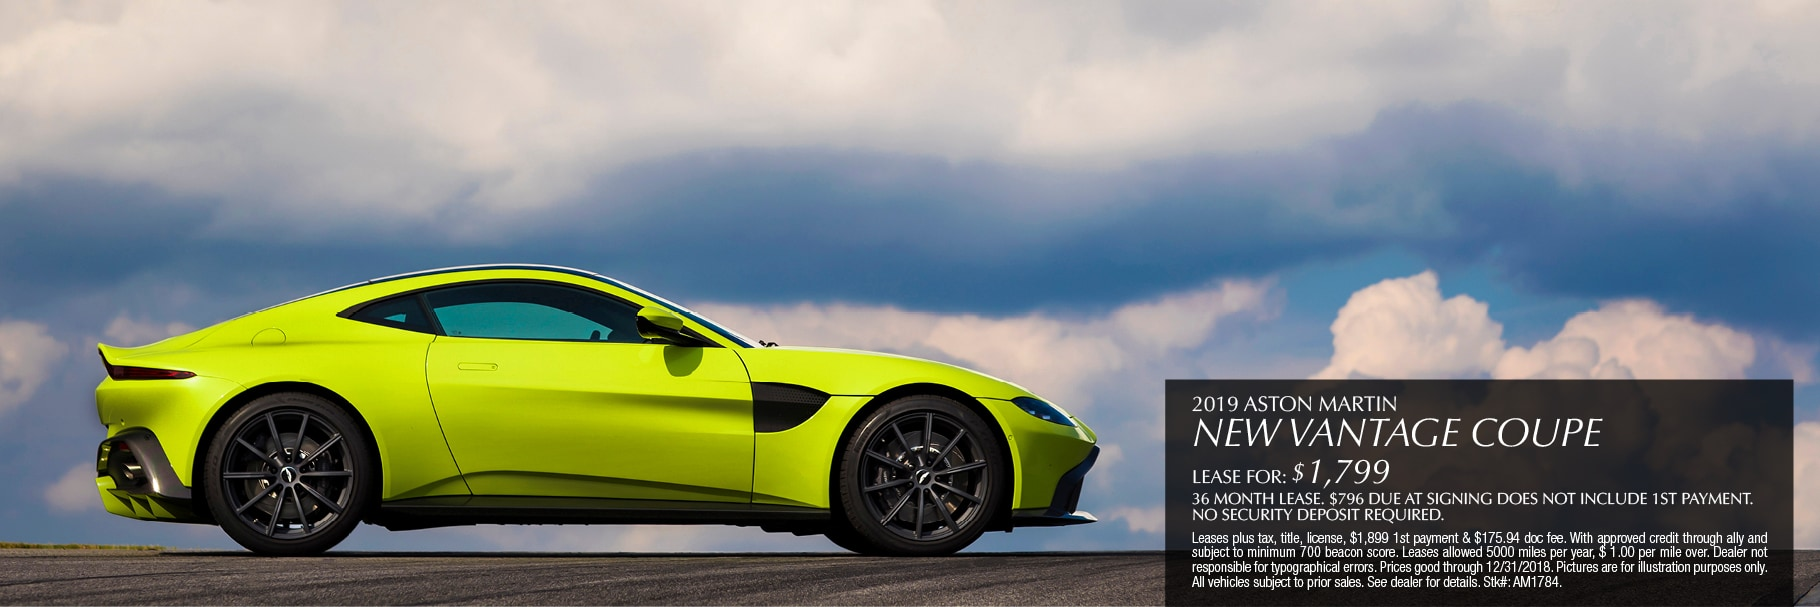 Aston Martin Lease Offers Napletons Aston Martin Of Chicago - Lease aston martin